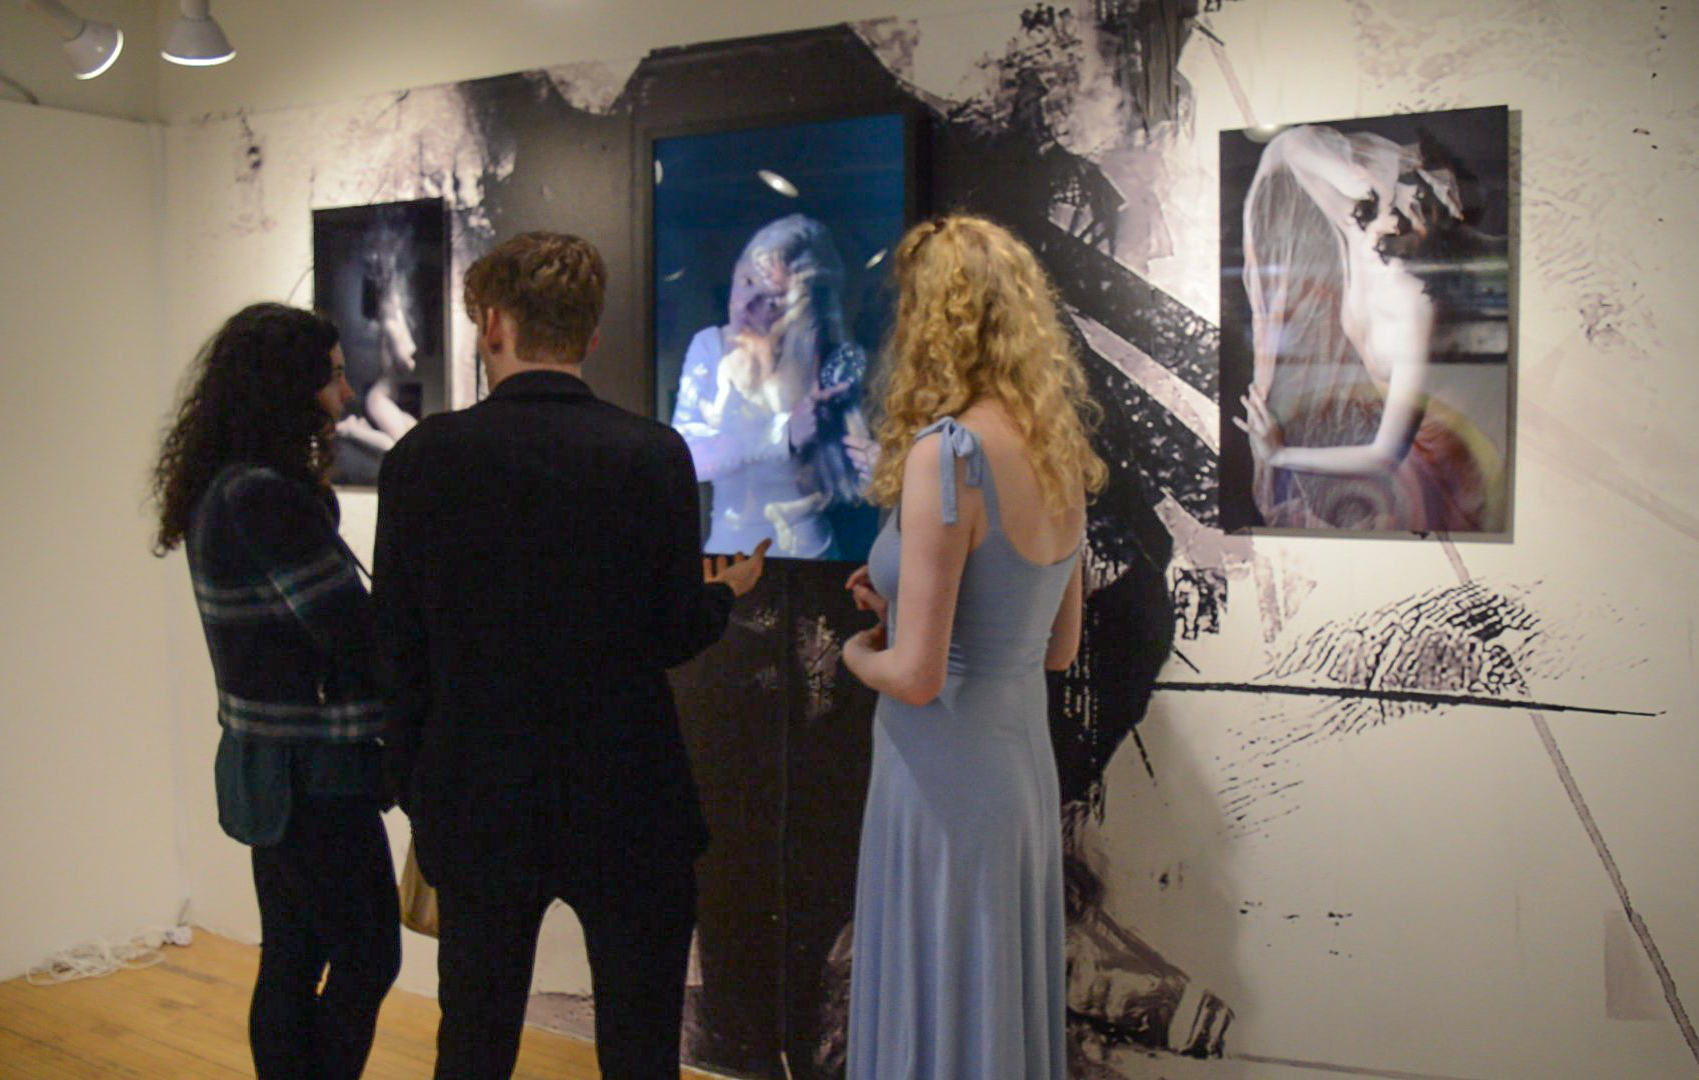 Visitors were captivated by Siris' original artistic practice and inspiring backstory